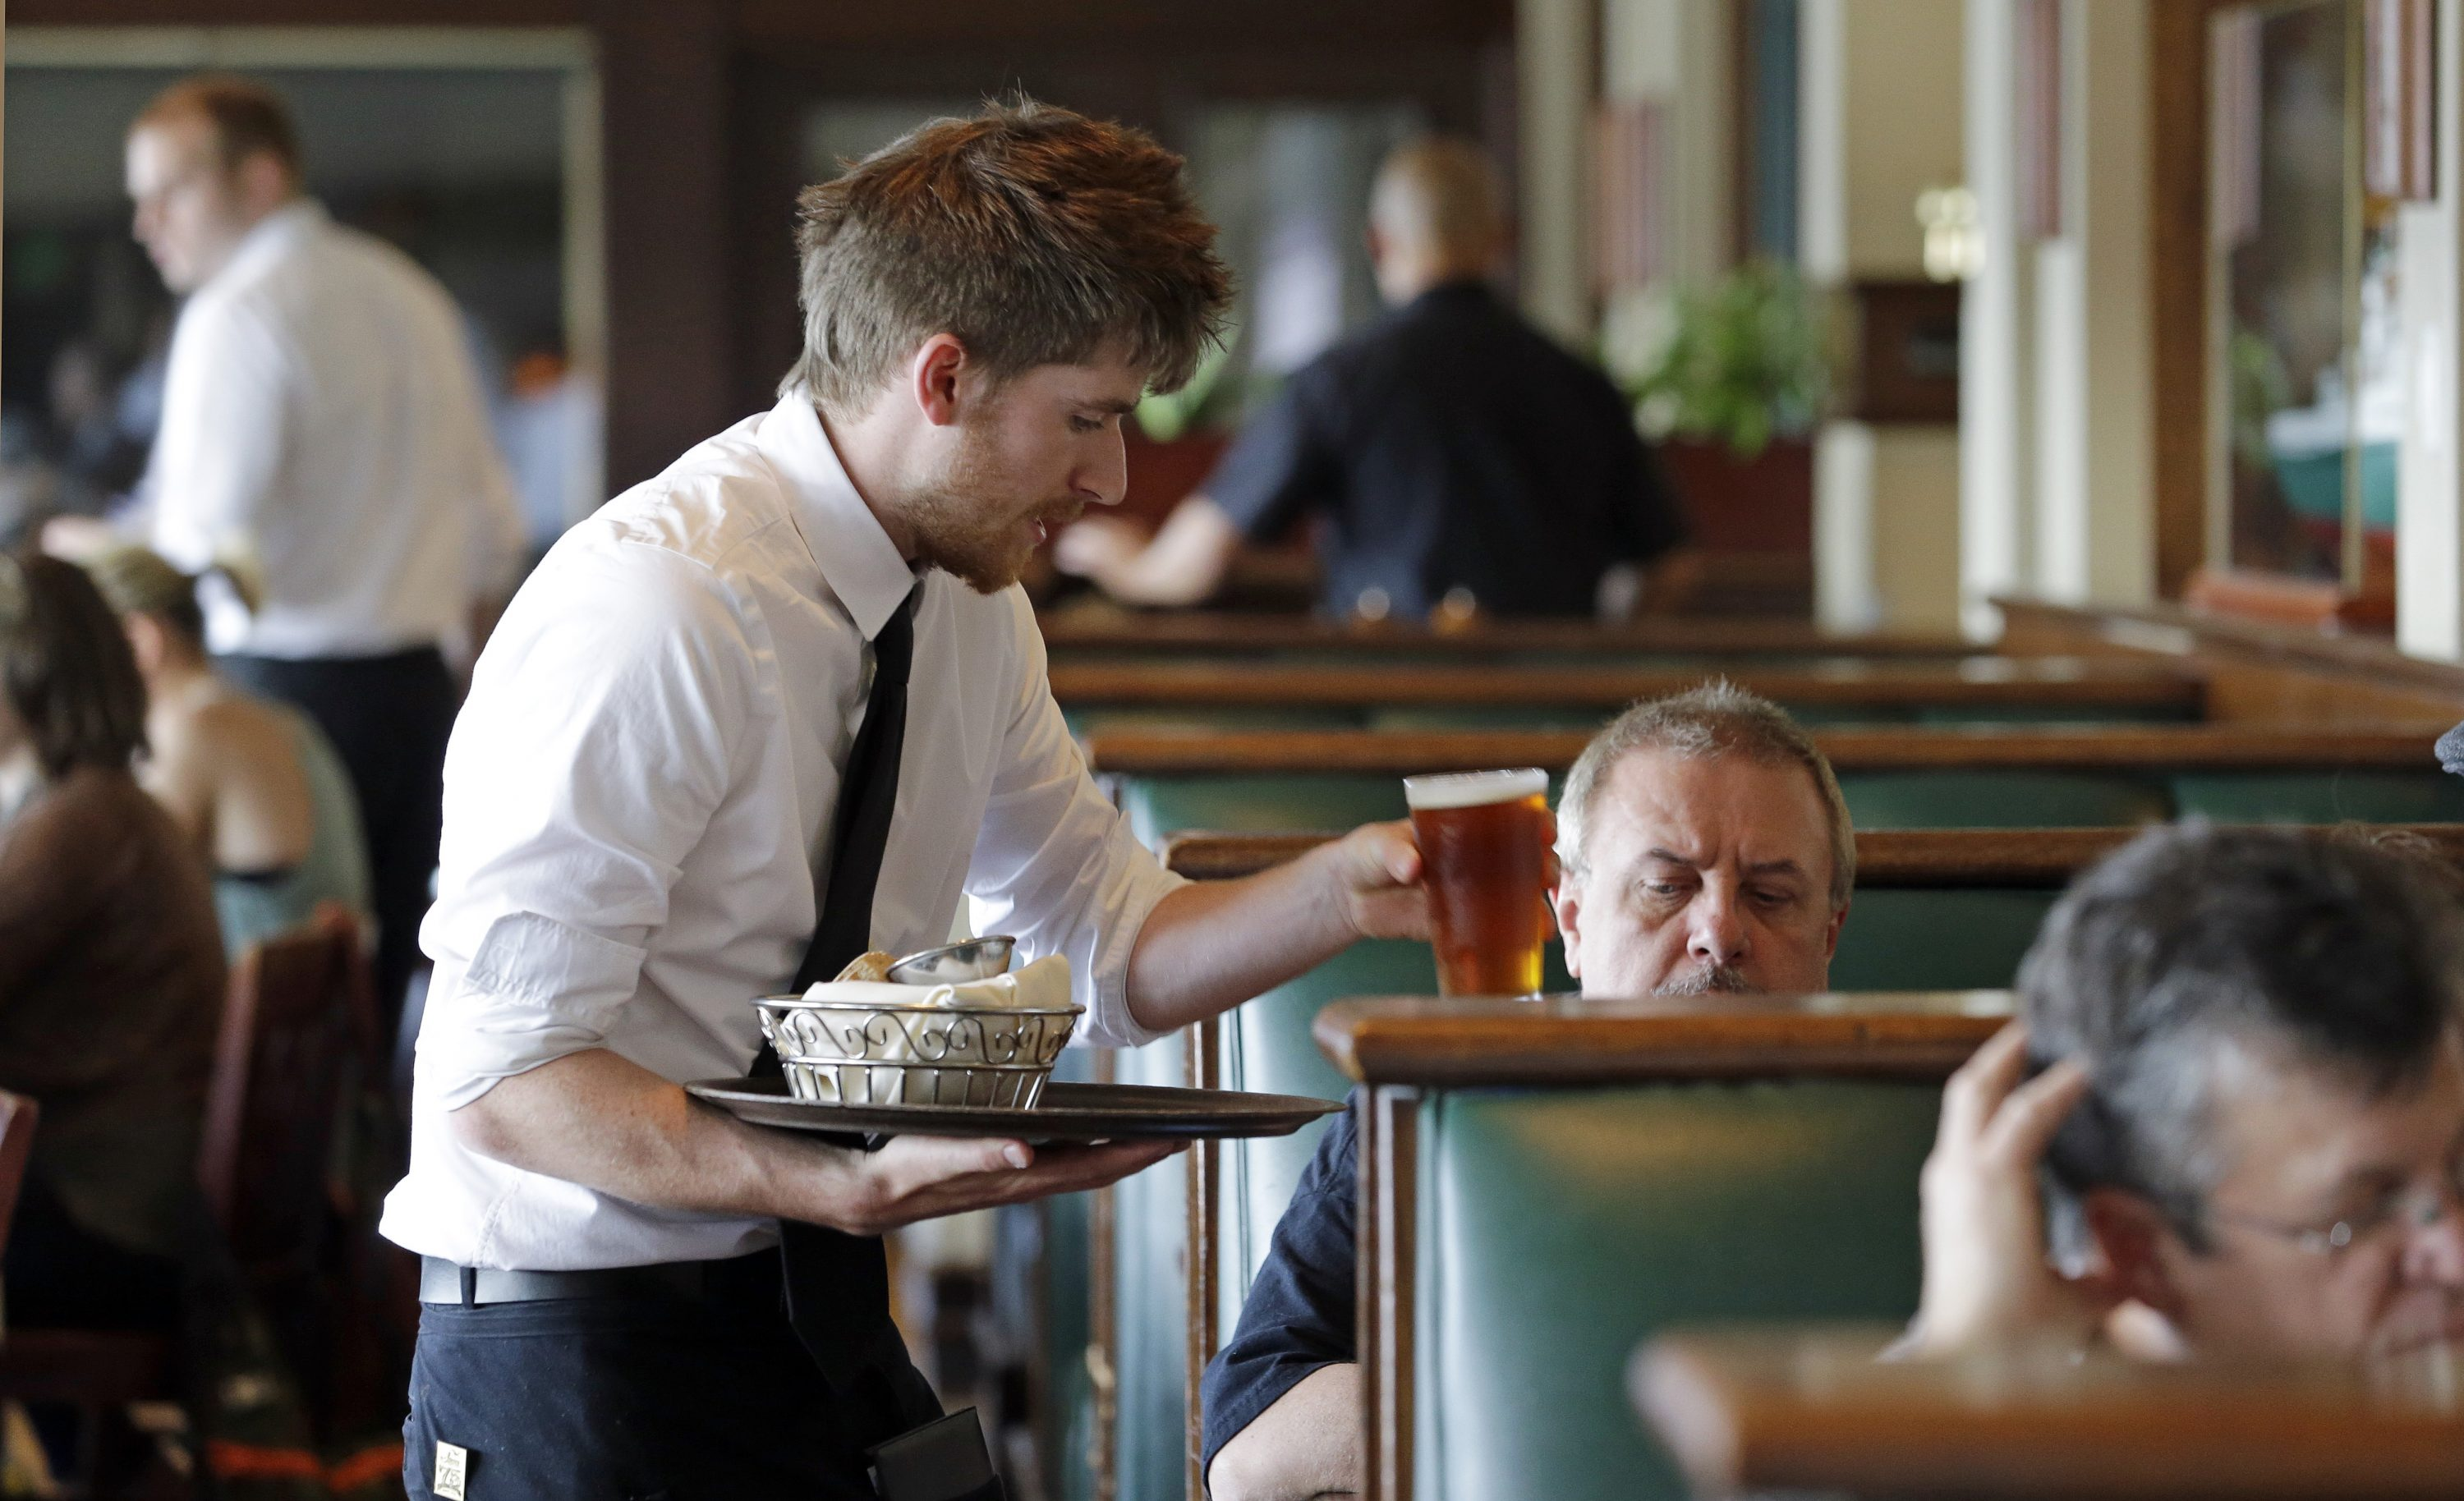 FILE - In this May 14, 2014, file photo, waiter Spencer Meline serves a customer at Ivar's Acres of Clams restaurant on the Seattle waterfront. The Institute for Supply Management, a trade group of purchasing managers, issues its index of non-manufacturing activity for May 2015, on Wednesday, June 3, 2015.